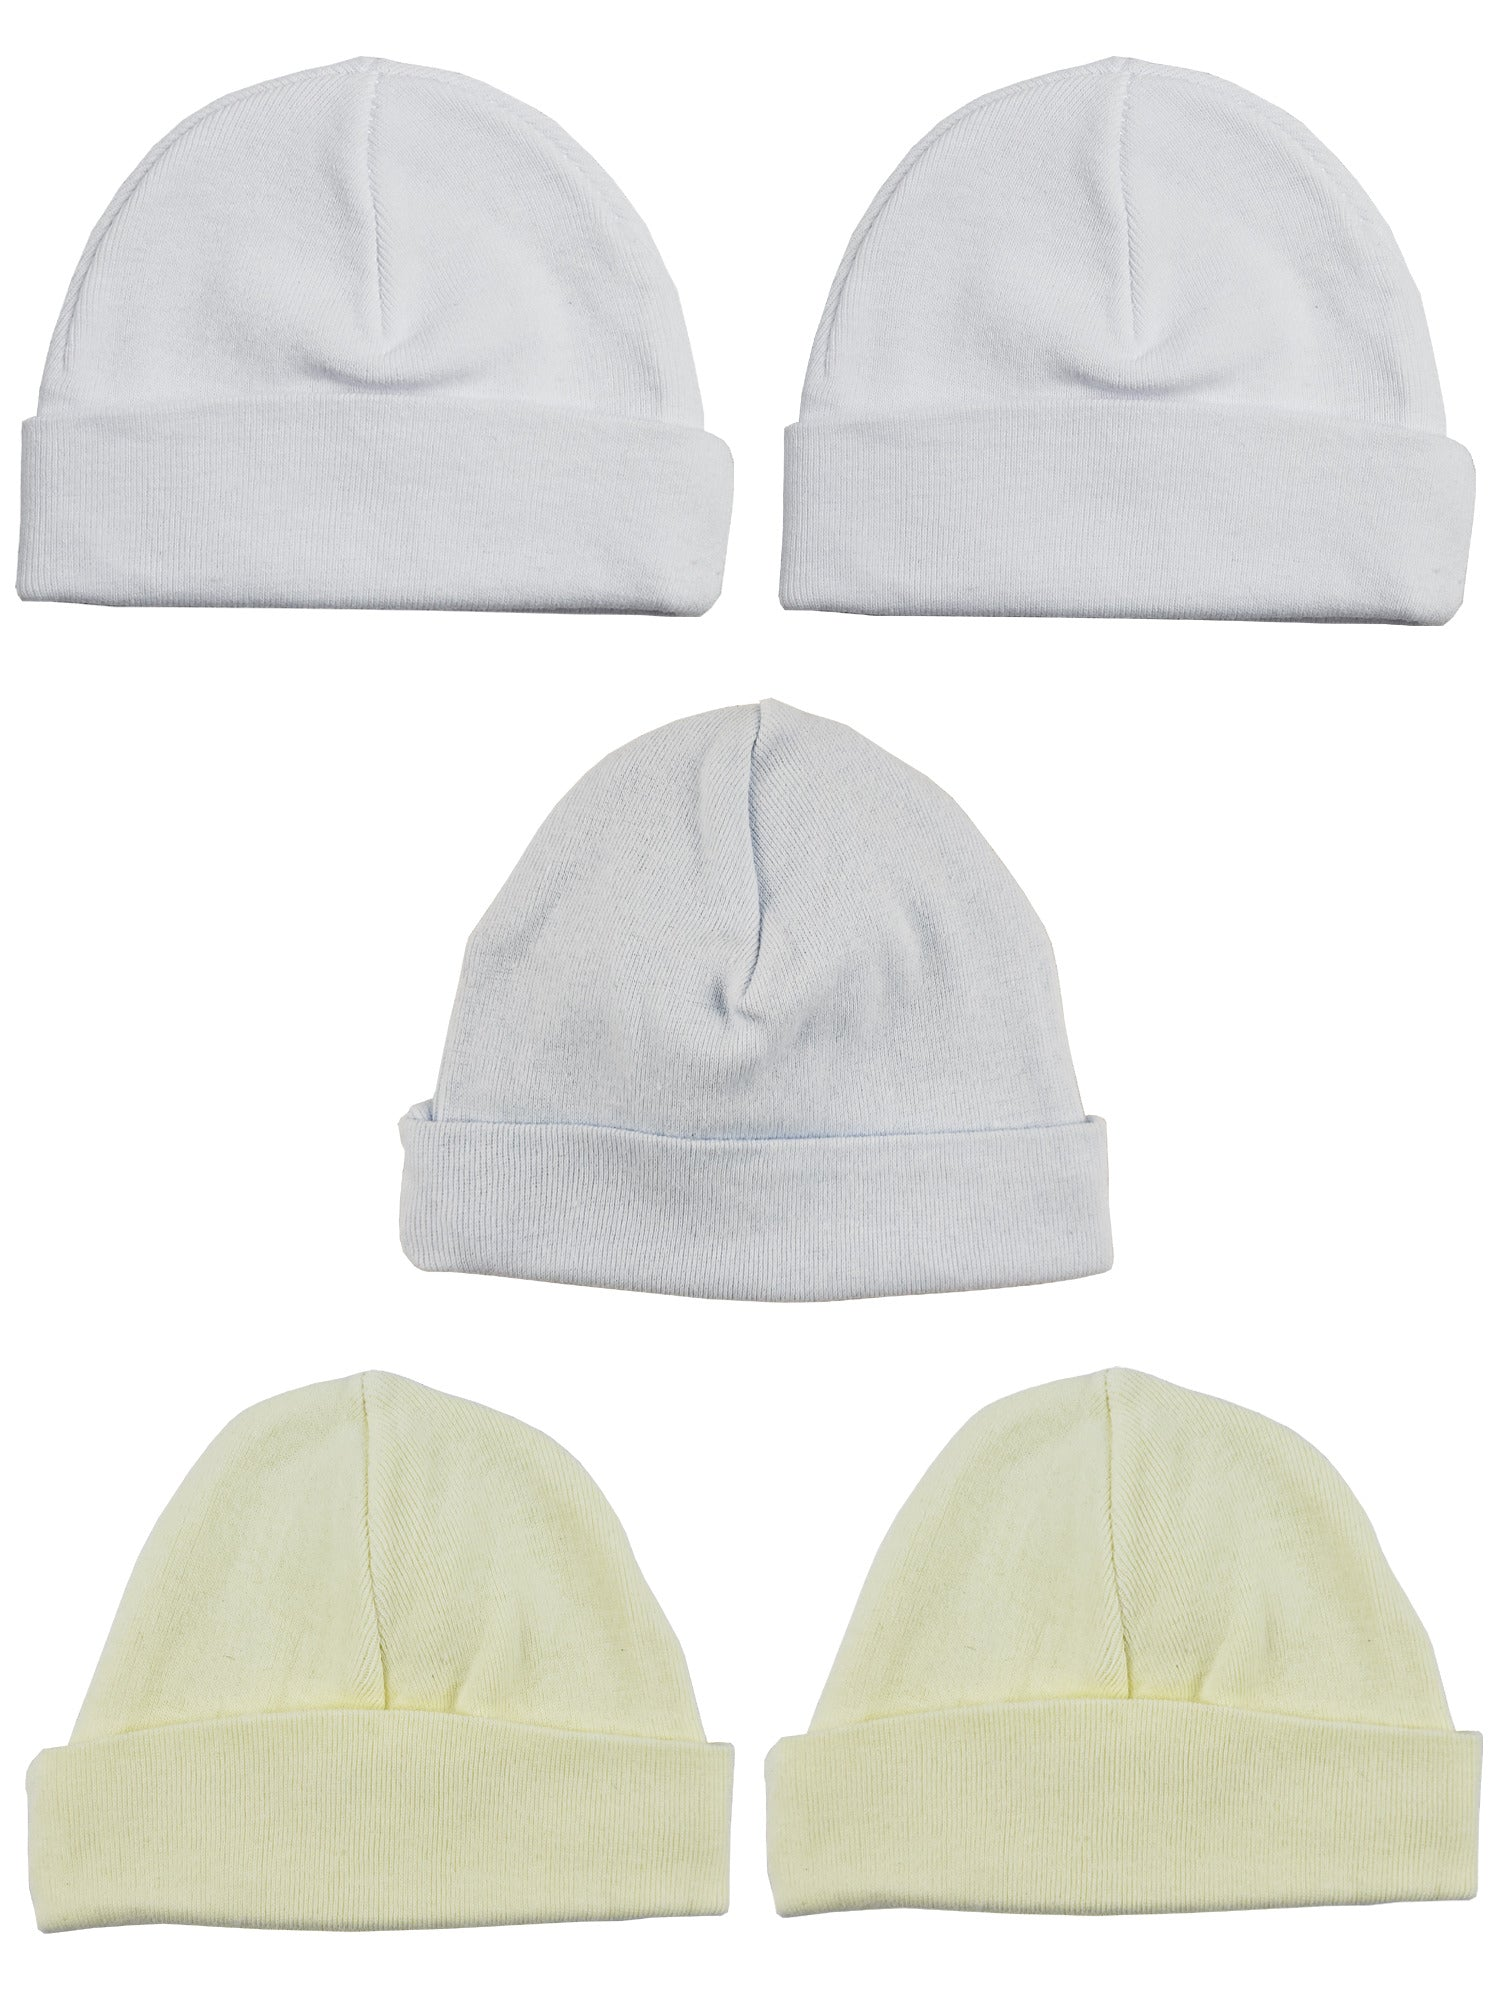 Bambini Boys Baby Cap (Pack of 5)